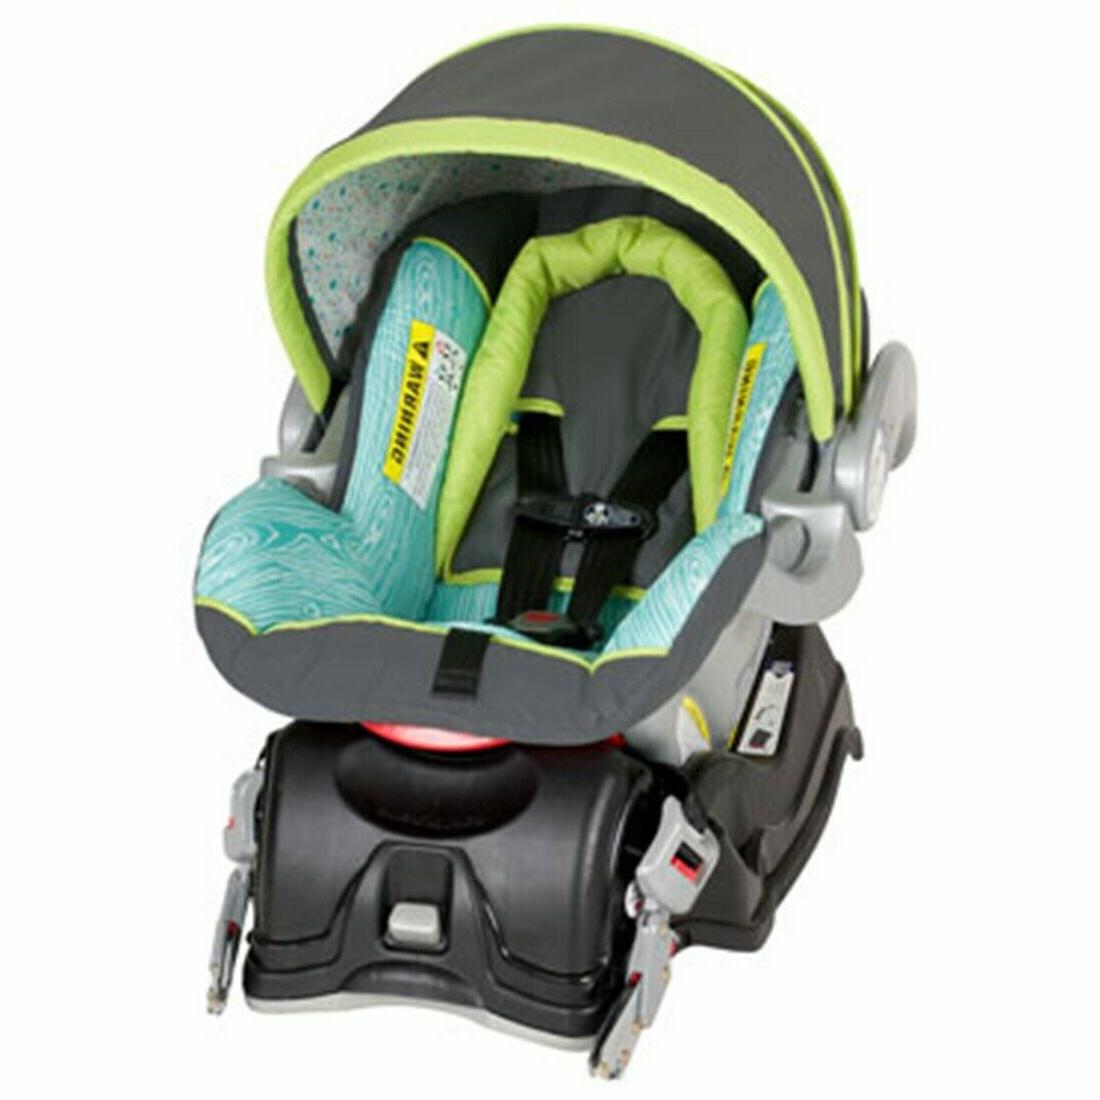 Baby Stroller System with Chair